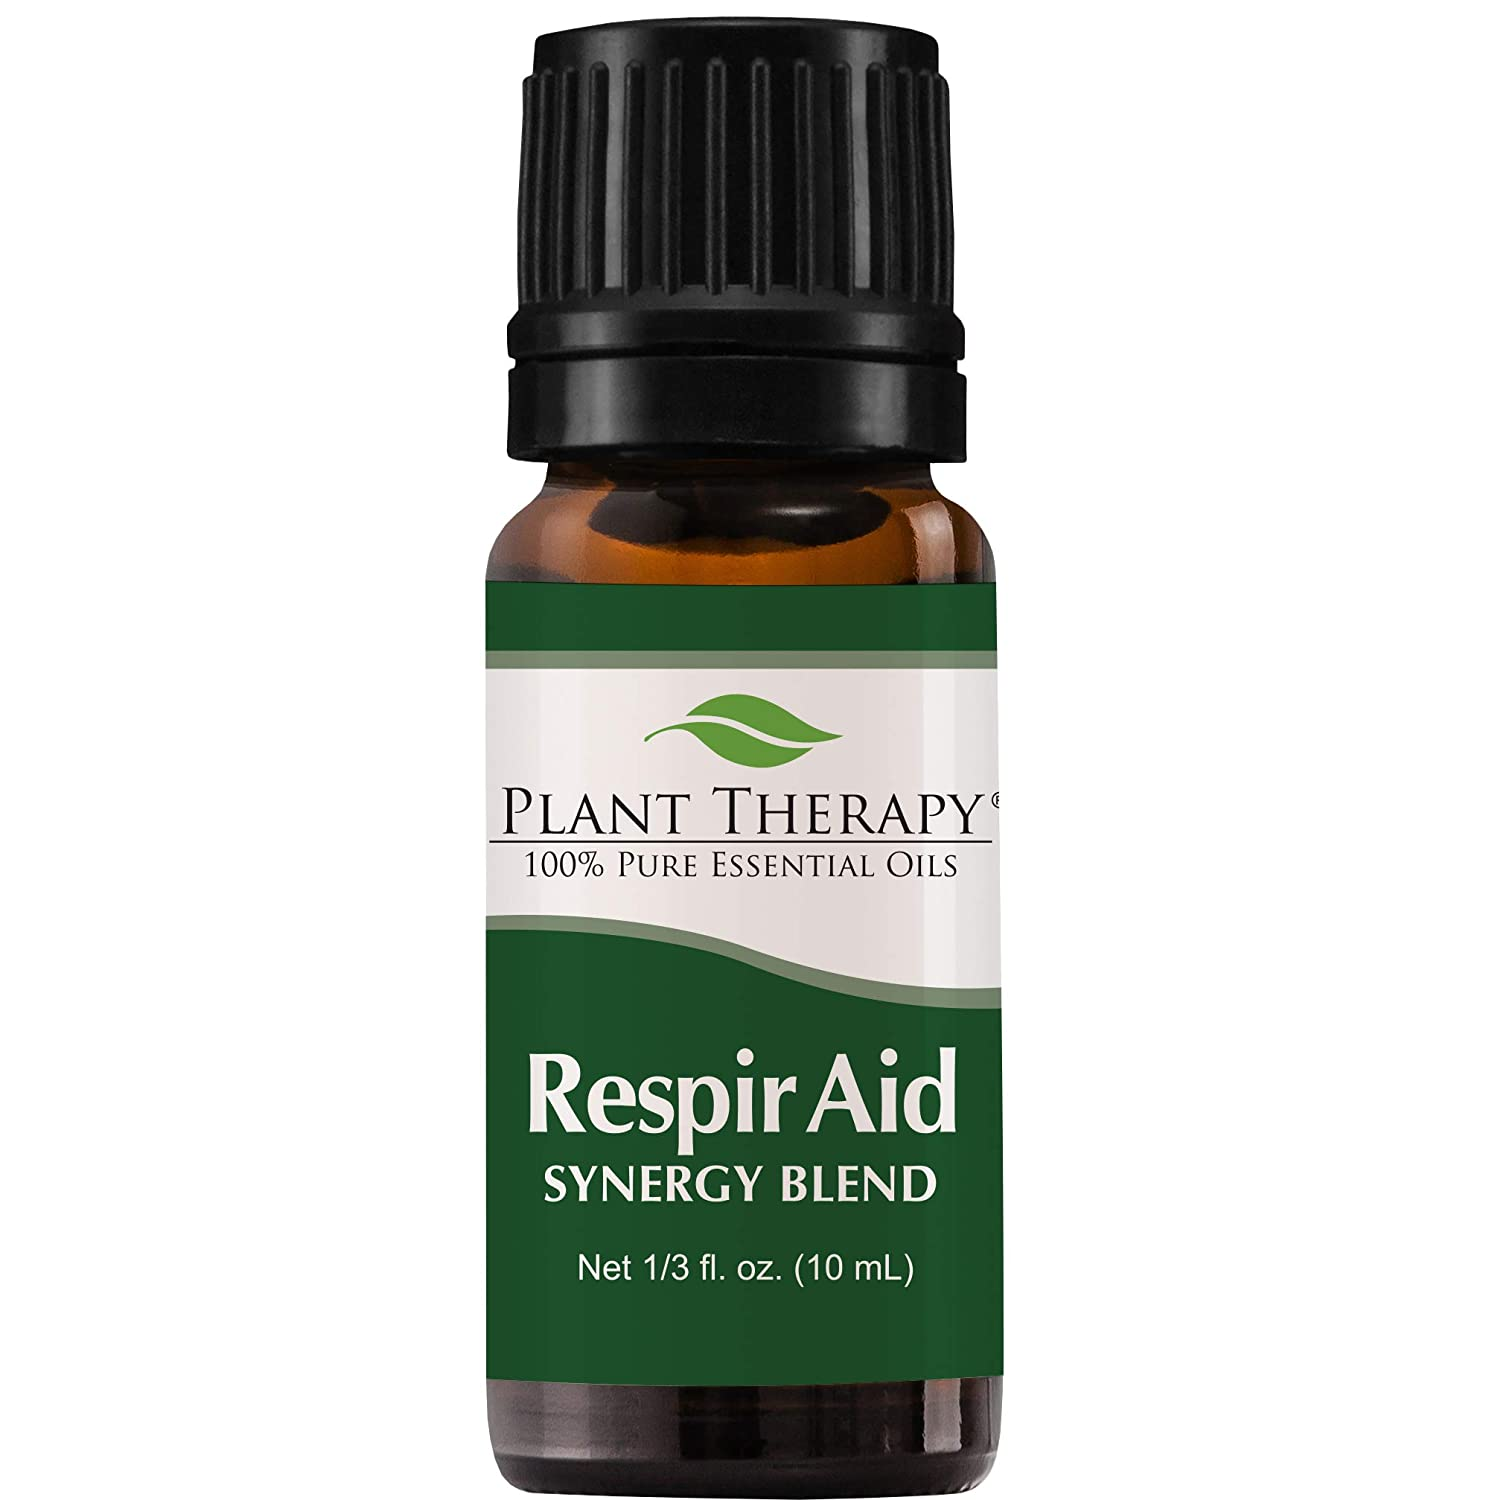 Plant Therapy Respir Aid Essential Oil - Sinus, Airway and Congestion Clearing Synergy Blend   100% Pure, Undiluted, Natural Aromatherapy, Therapeutic Grade 10 milliliter (1/3 ounce)